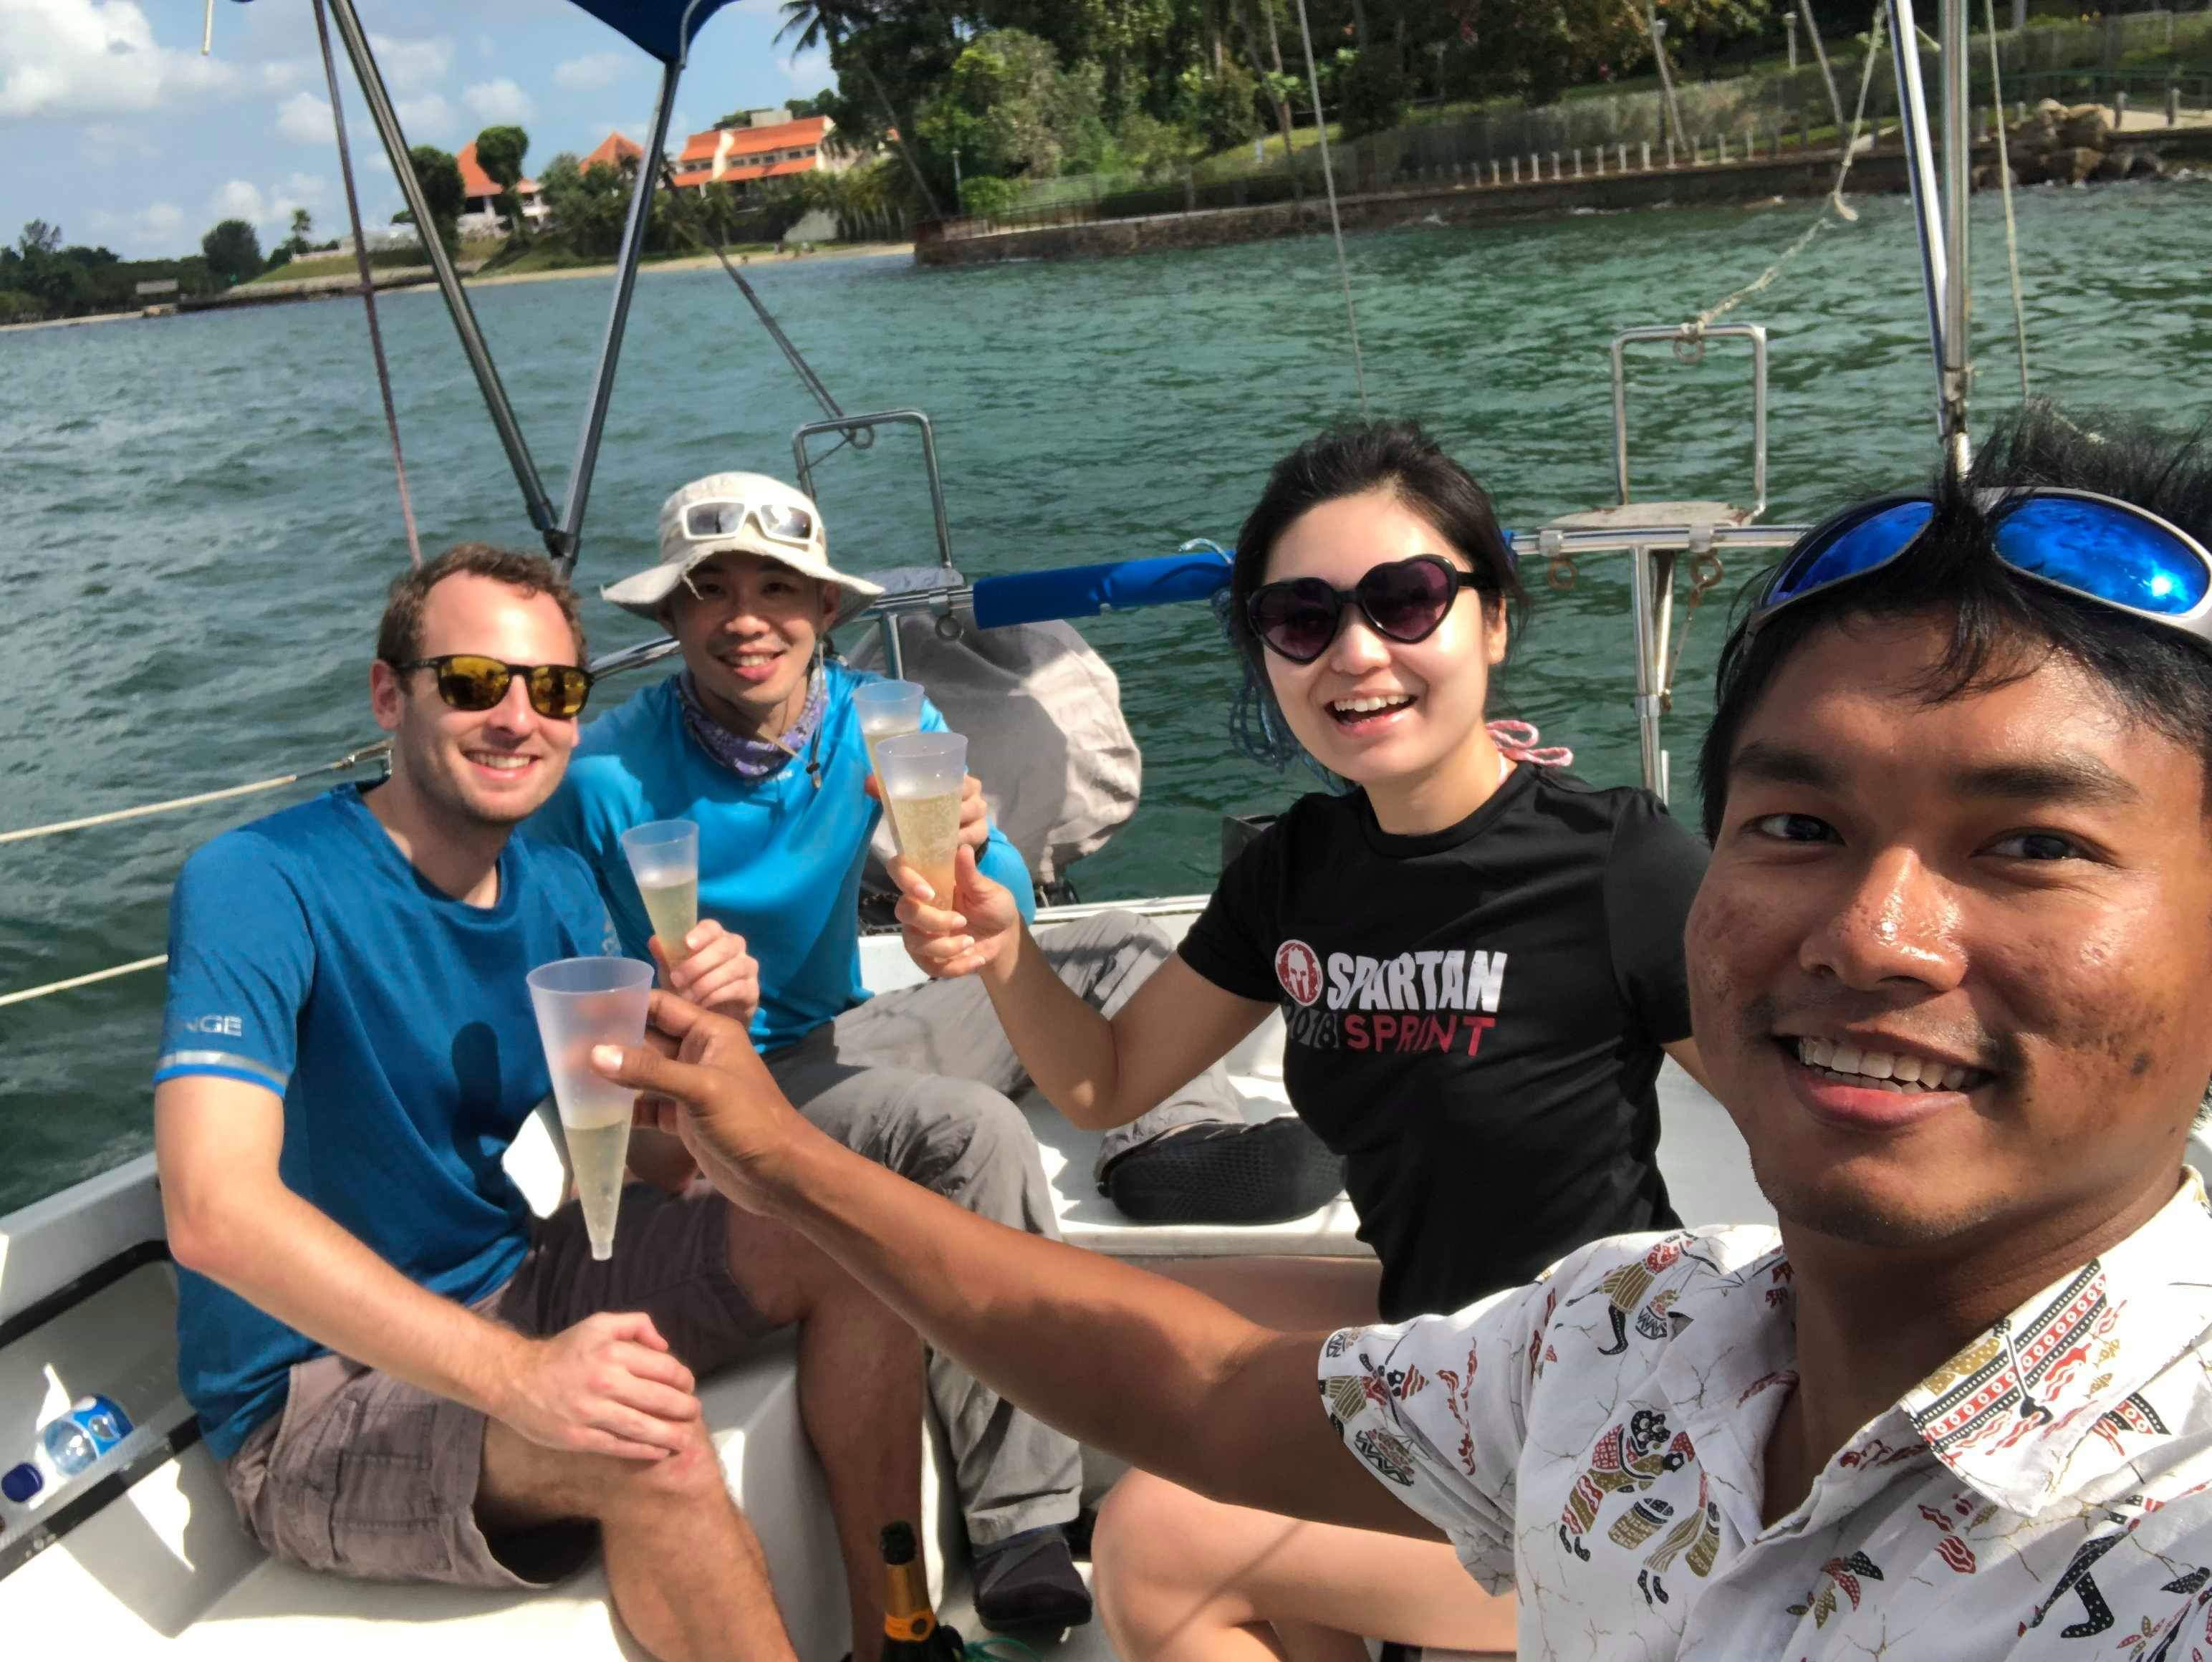 Sailing with friends!